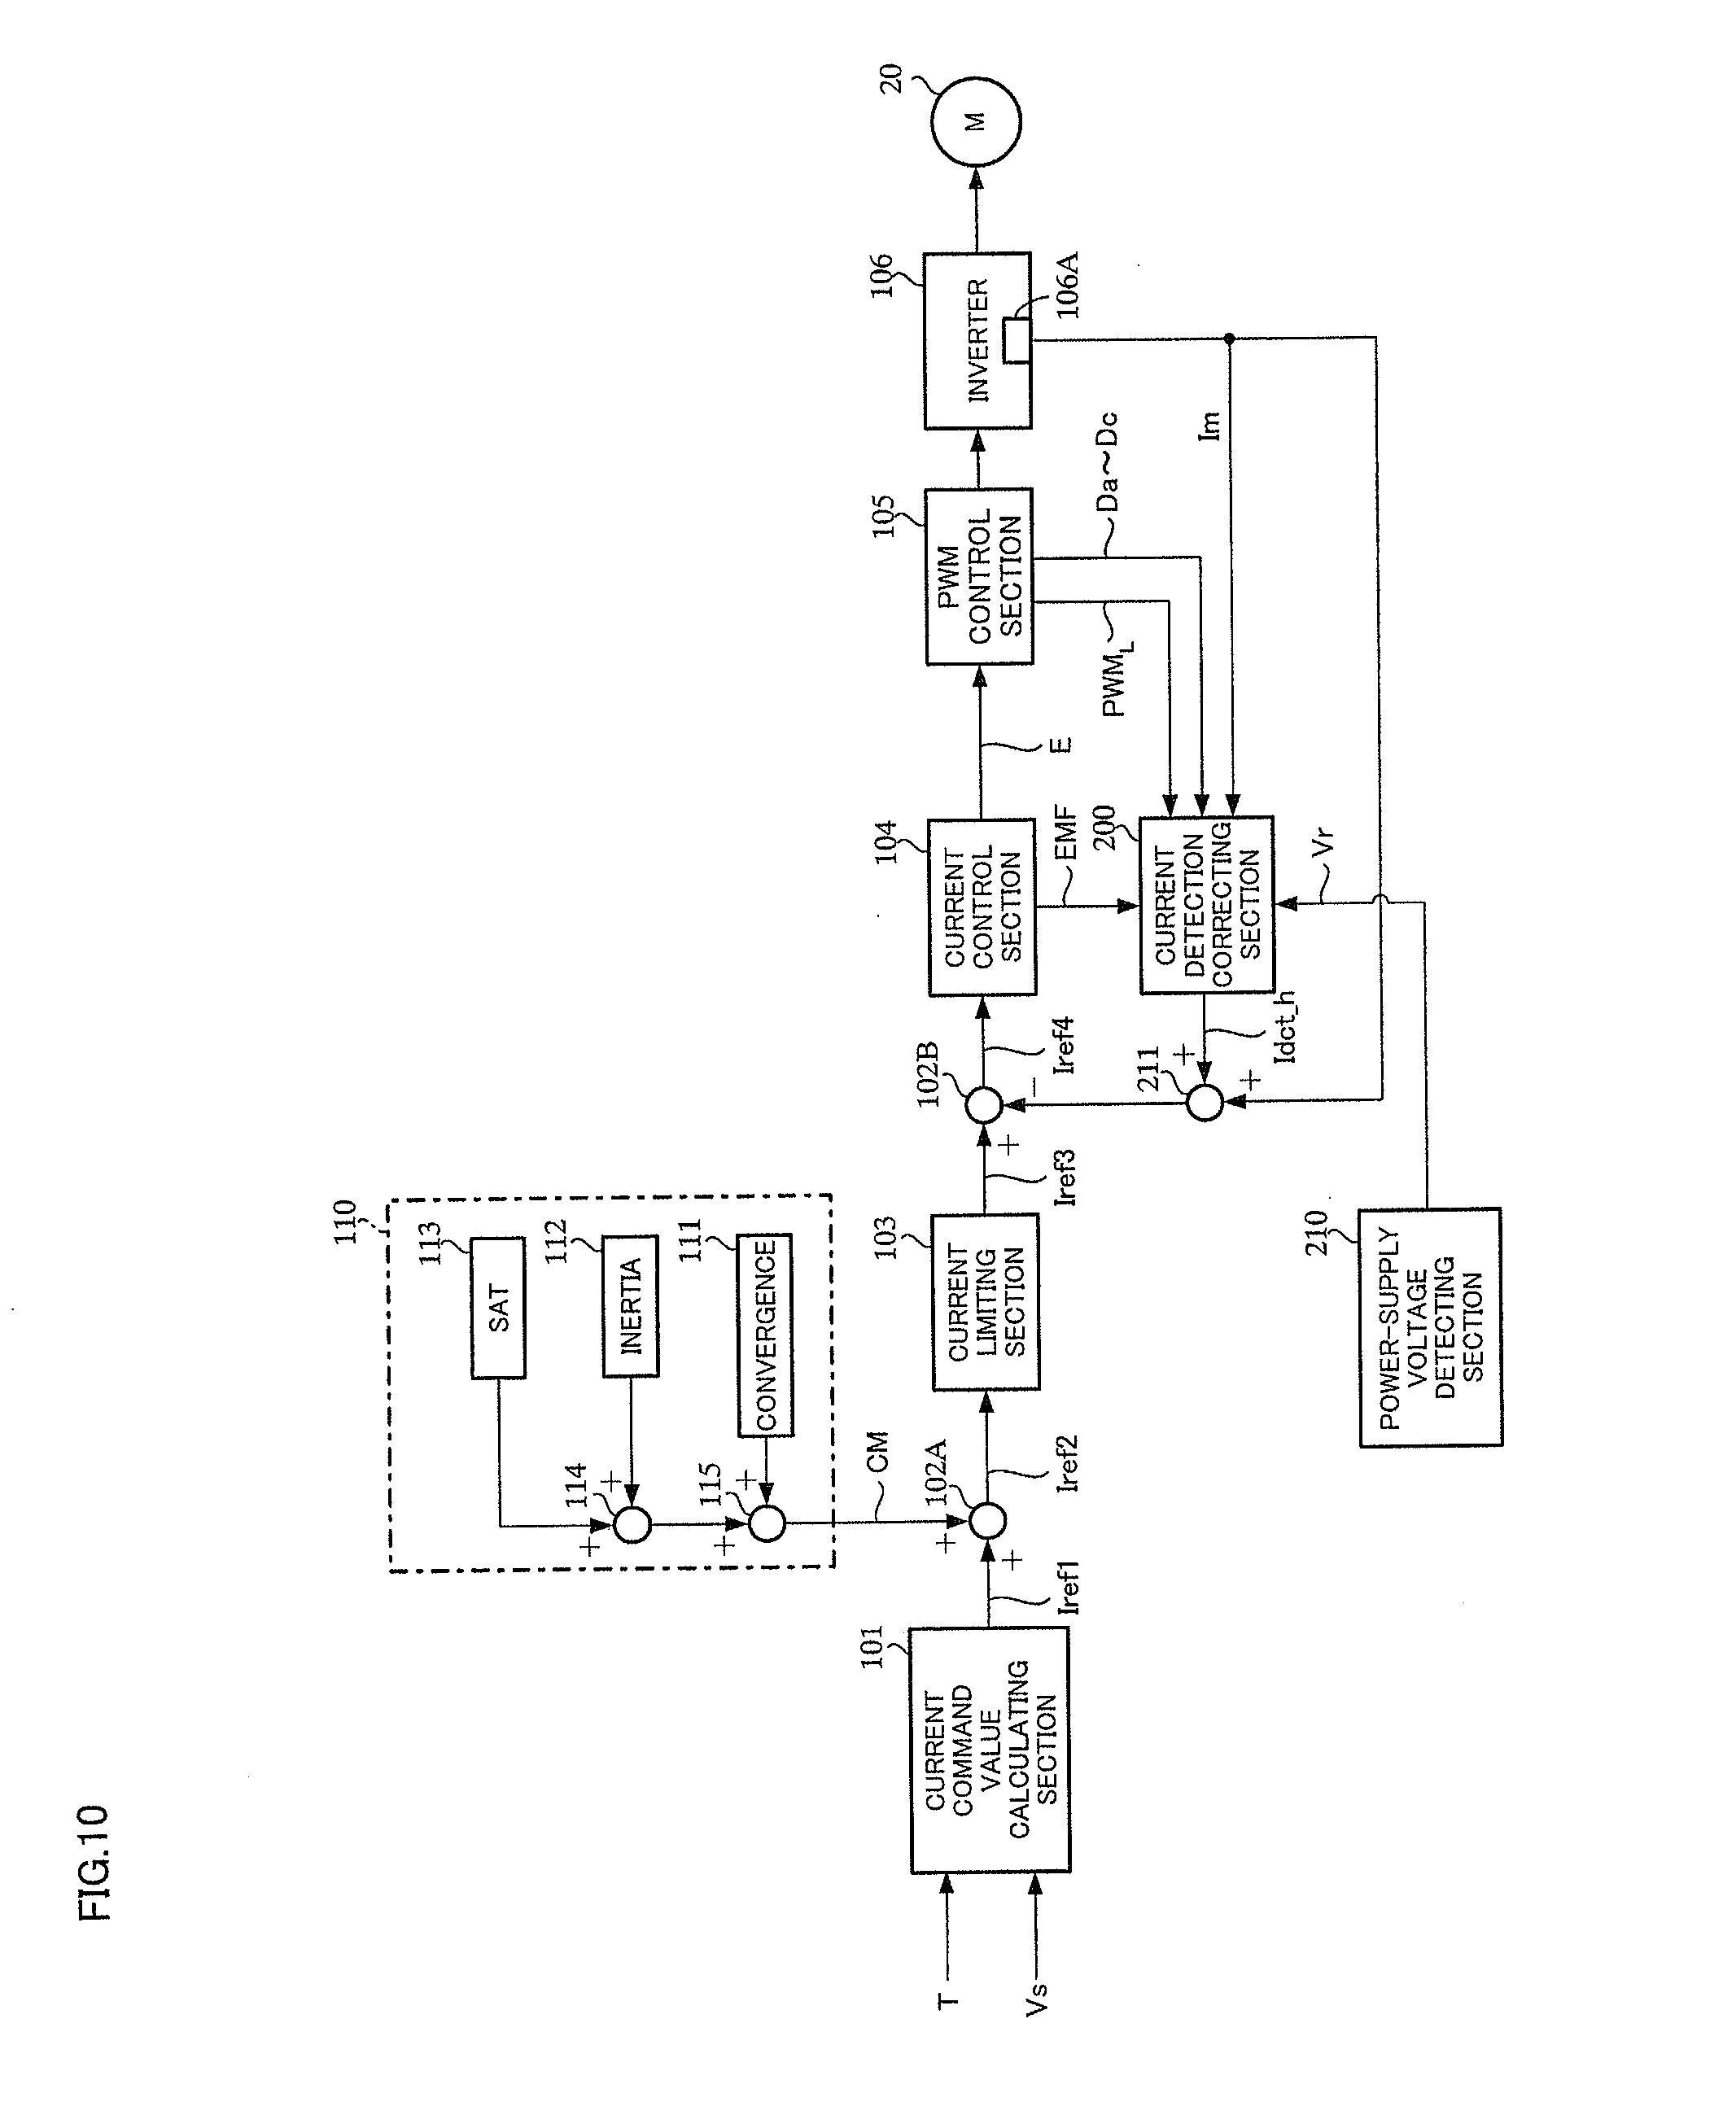 patent us20130158808 motor control apparatus and electric power Wiring Motor Control patent drawing